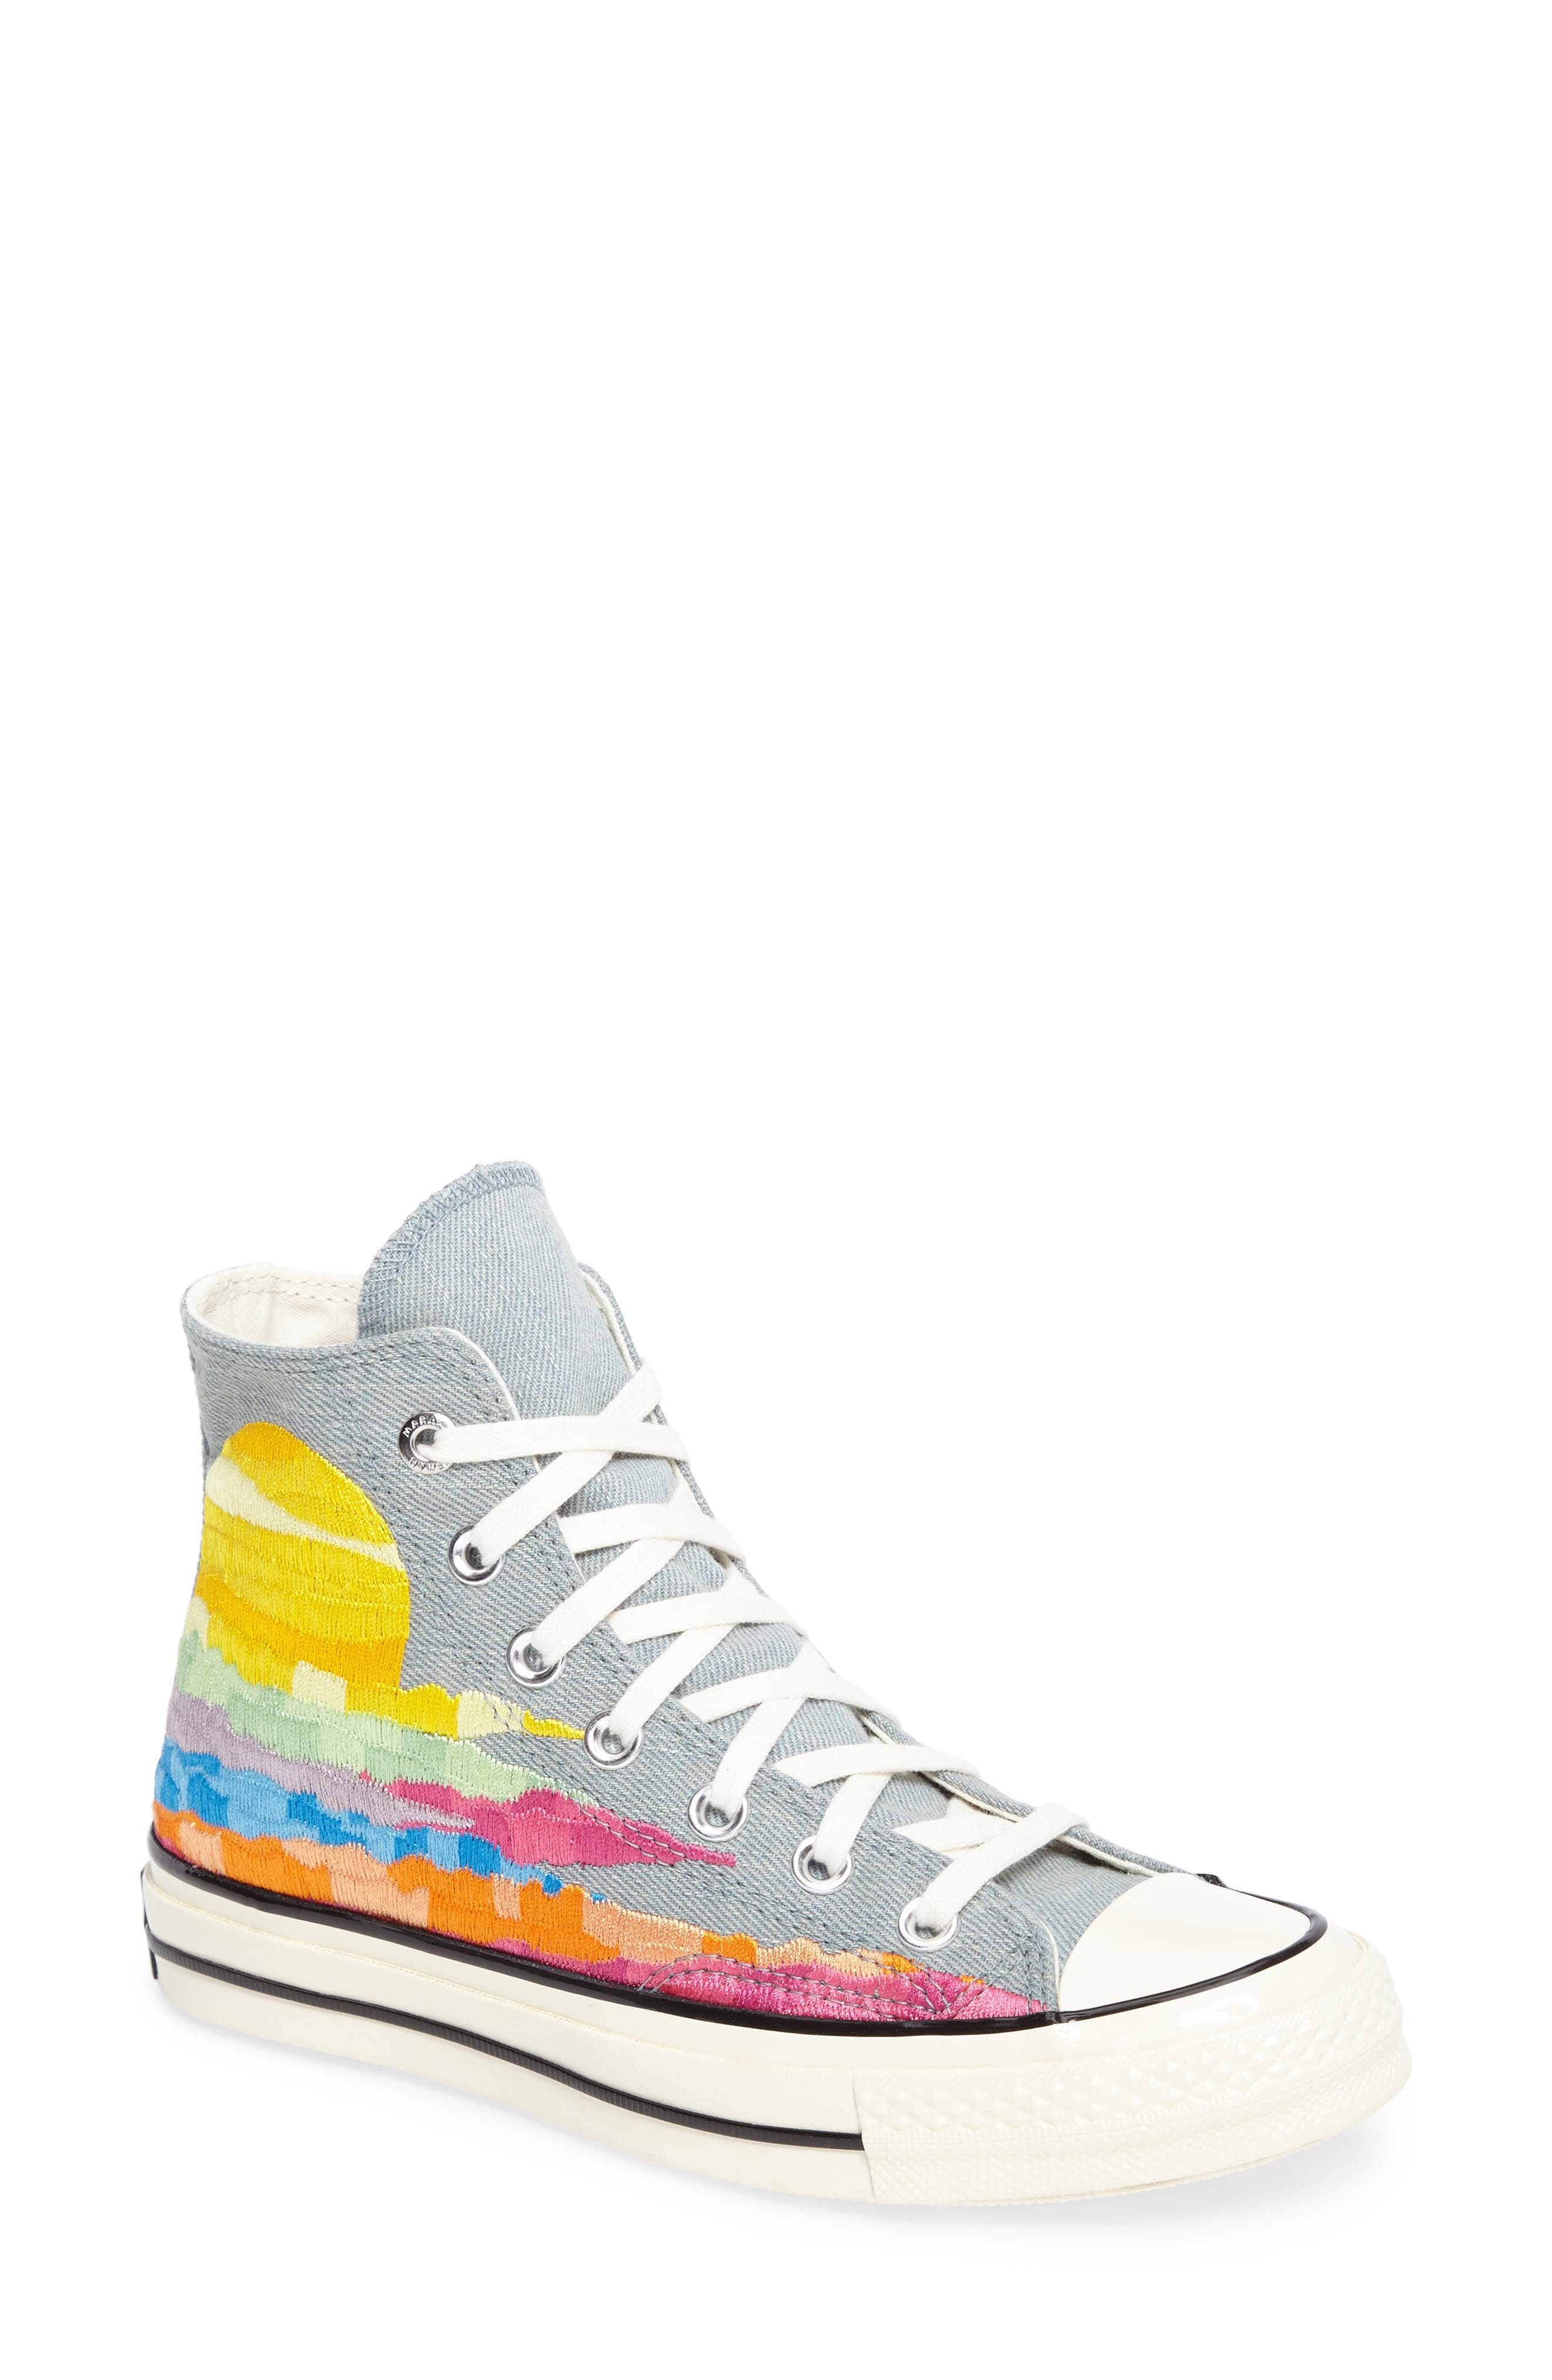 x Mara Hoffman All Star<sup>®</sup> Embroidered High Top Sneaker,                             Main thumbnail 2, color,